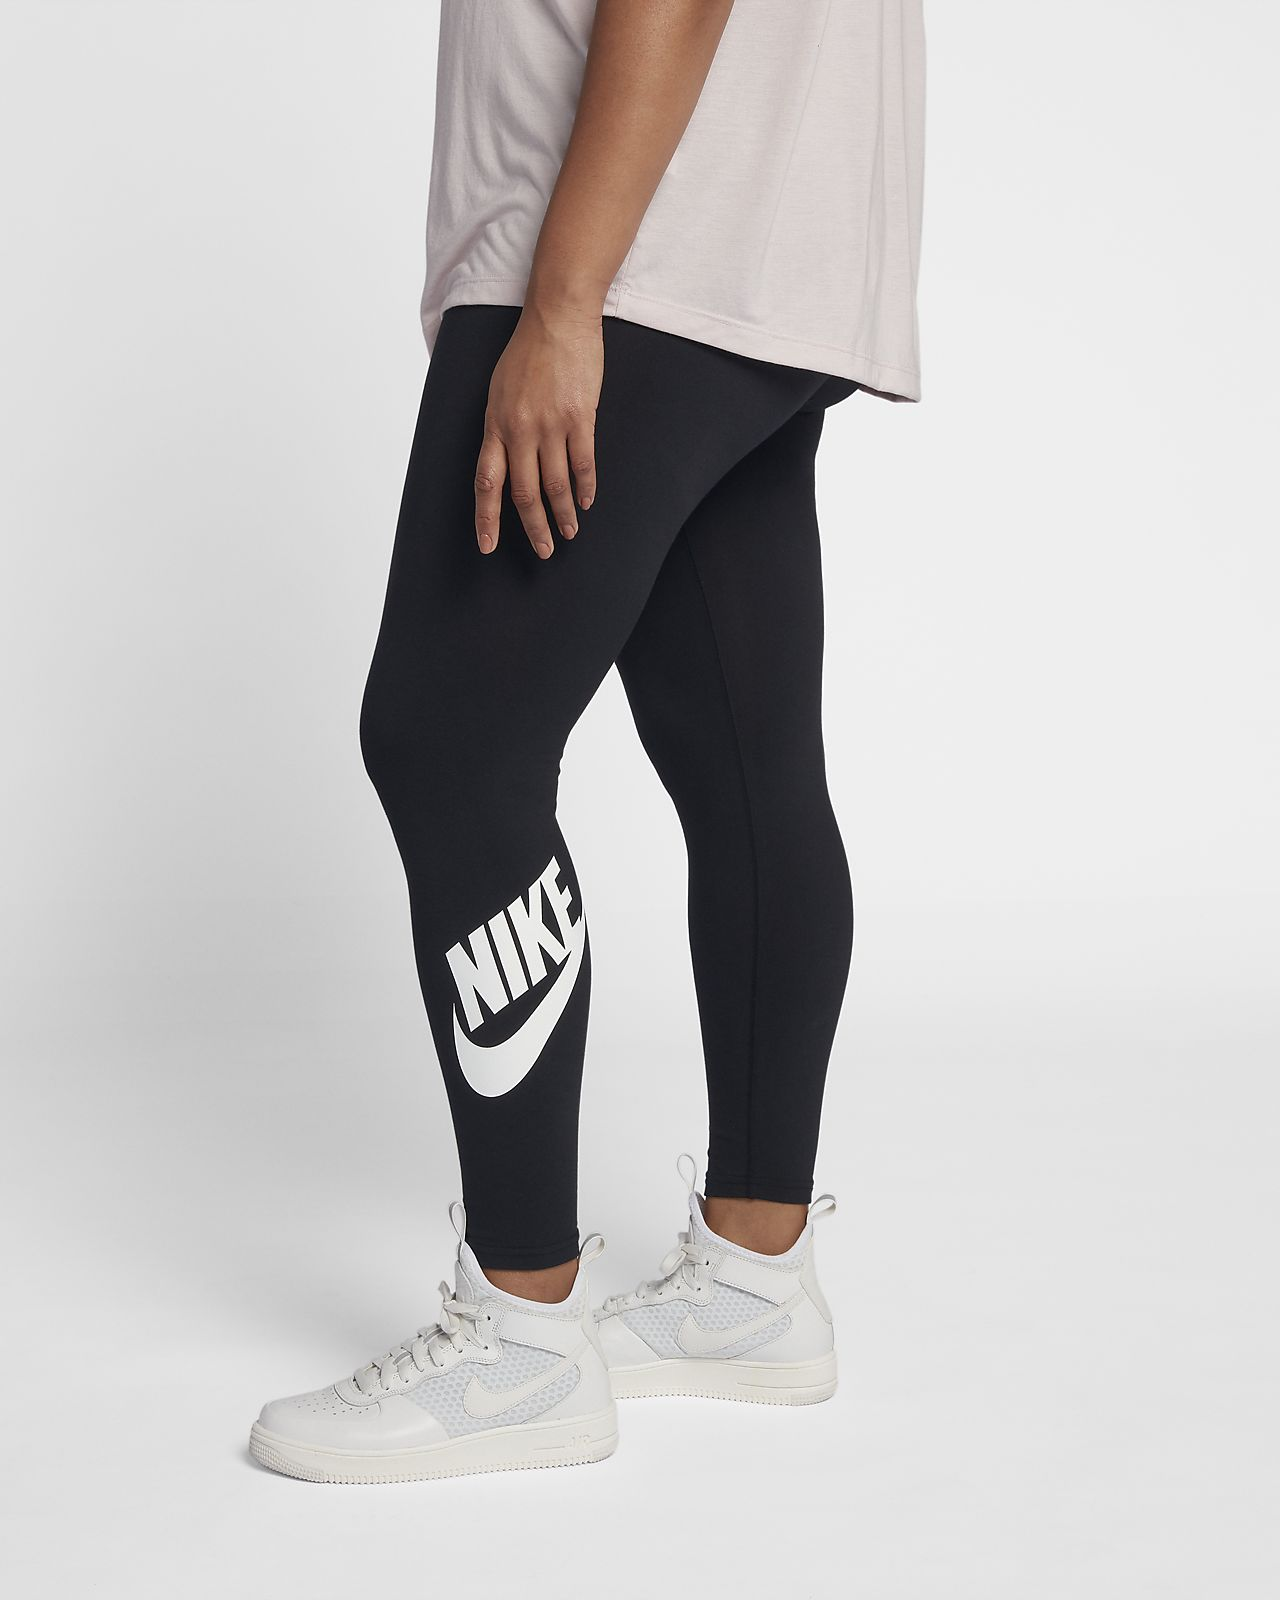 Nike Sportswear Leg-A-See (Plus Size) Women's Leggings